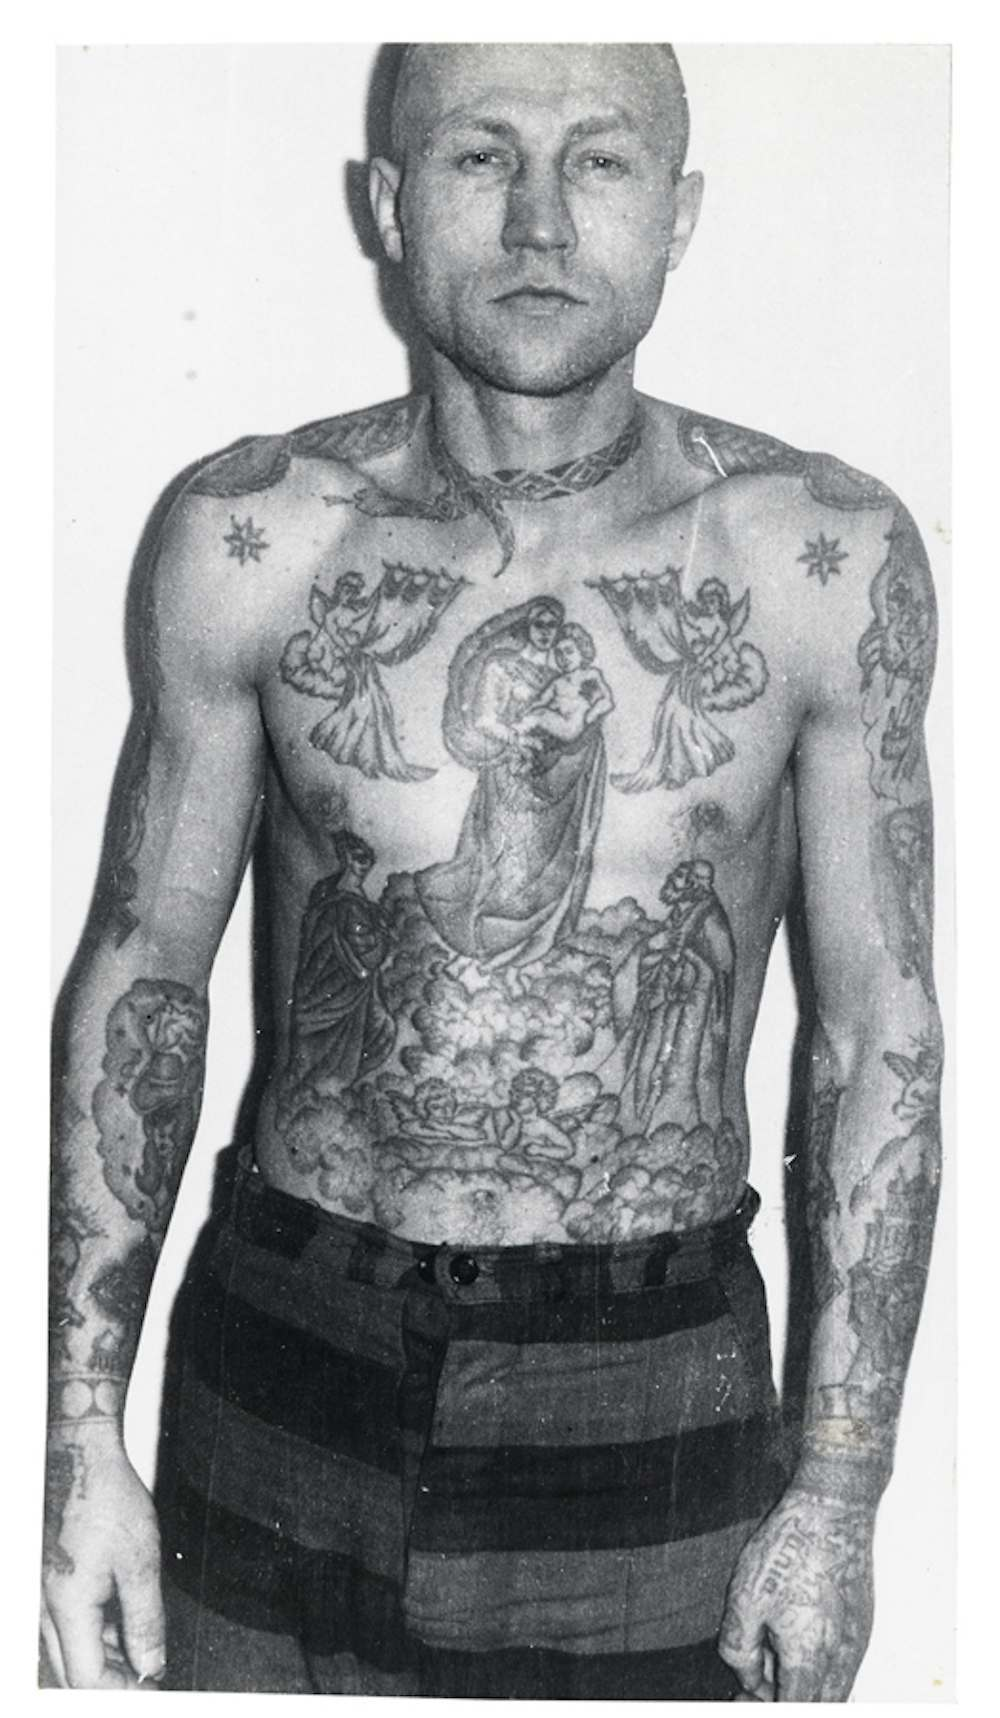 Russian Criminal Tattoo Police Files: Decoding The Mark Of ...